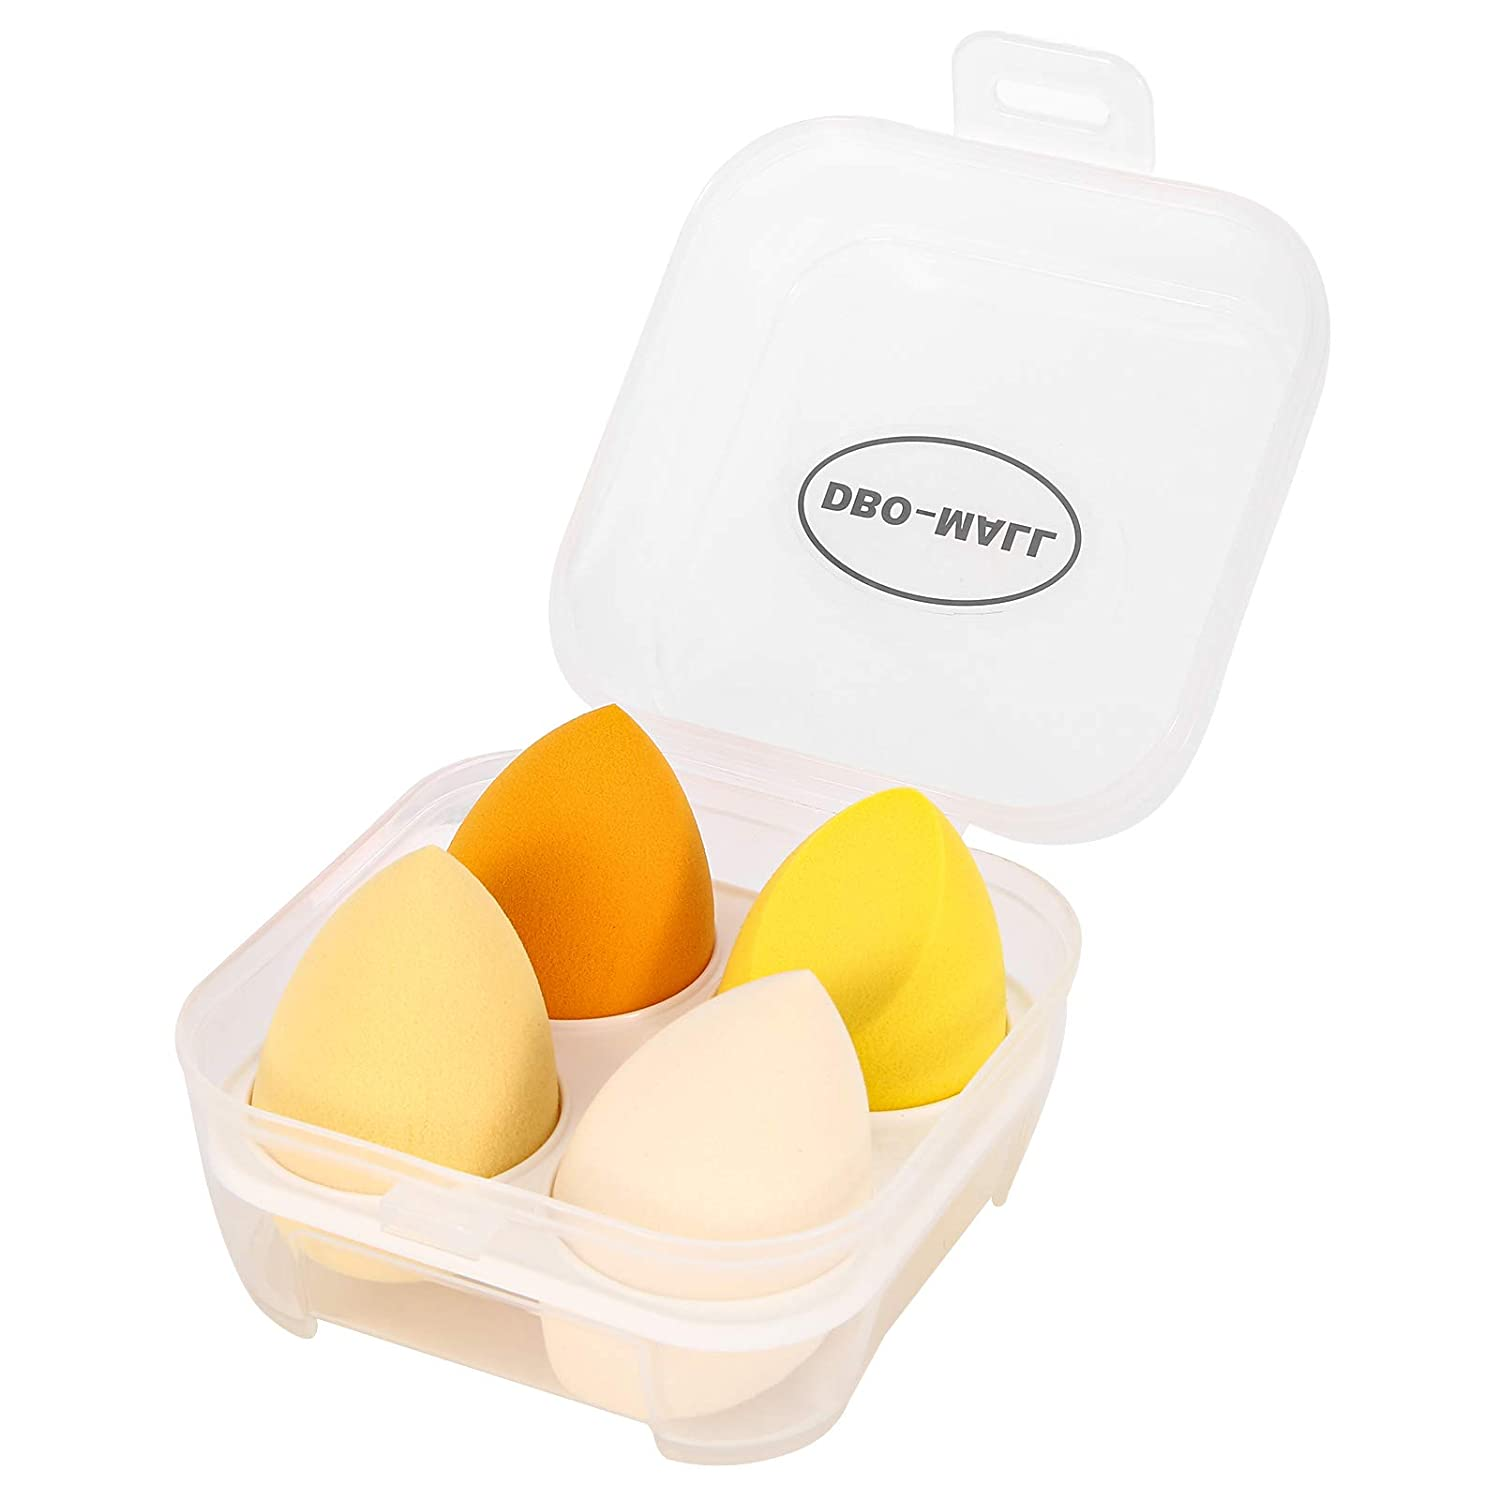 DBO-MALL Beauty Blender Puffs Sponges,3D Beauty Egg (4pcs,Yellow) With Box- For Powder,Cream Or Liquid.